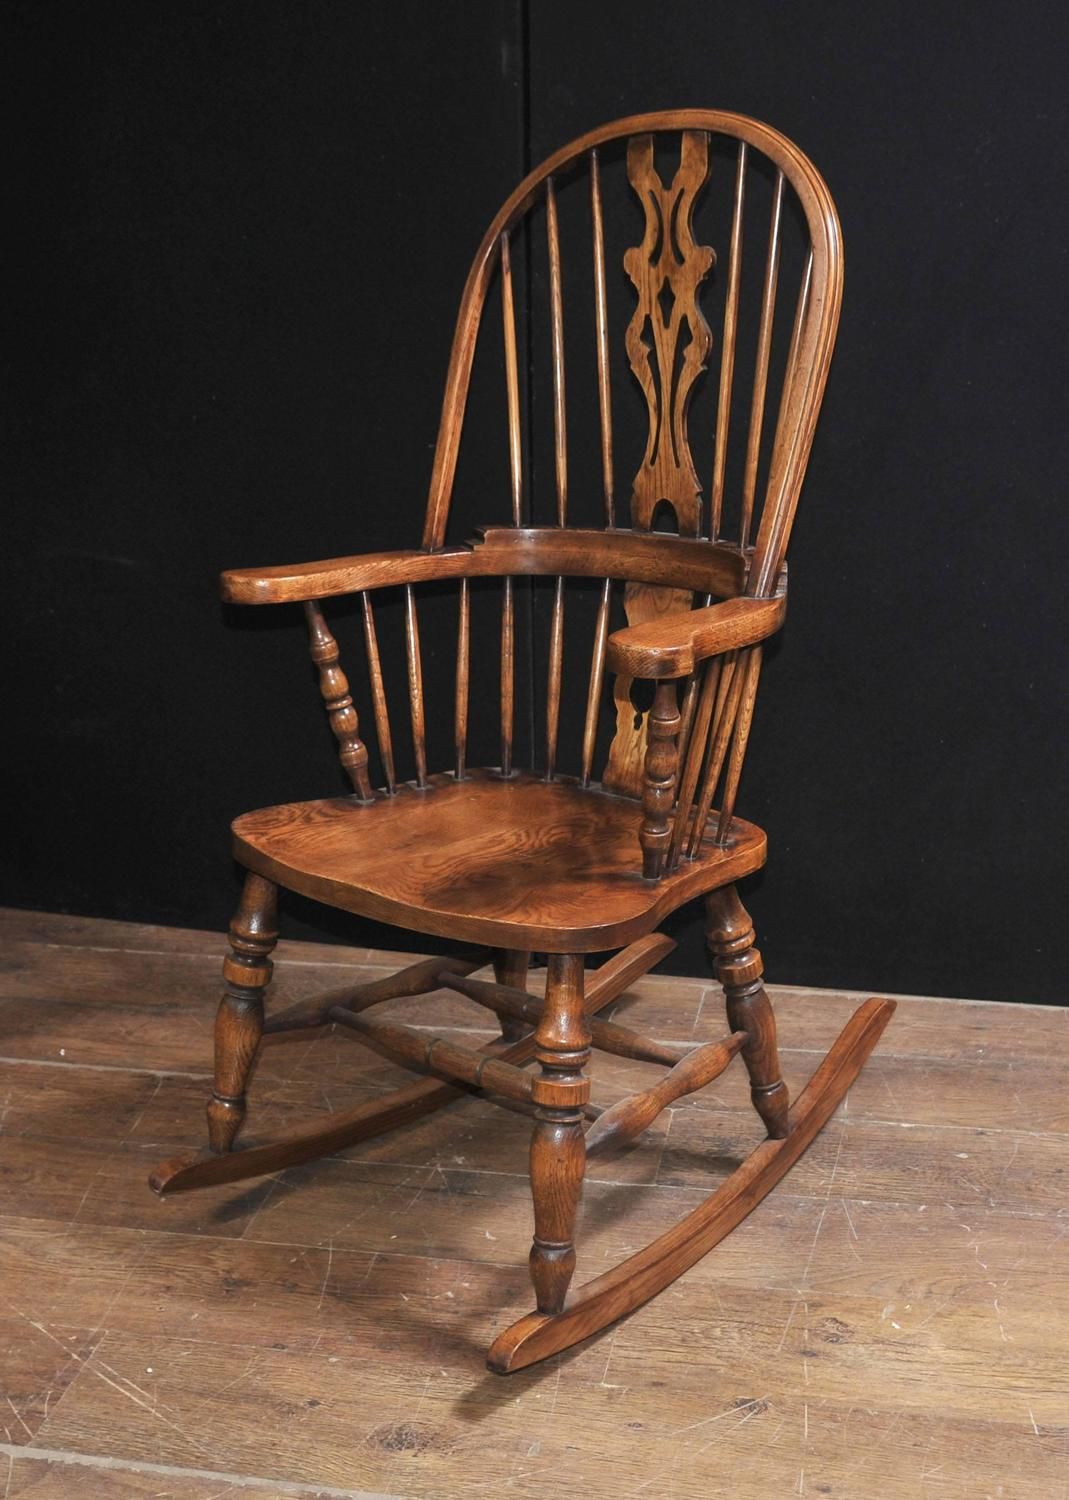 farmhouse chairs for sale fishing chair with rod holder hand carved english windsor rocking